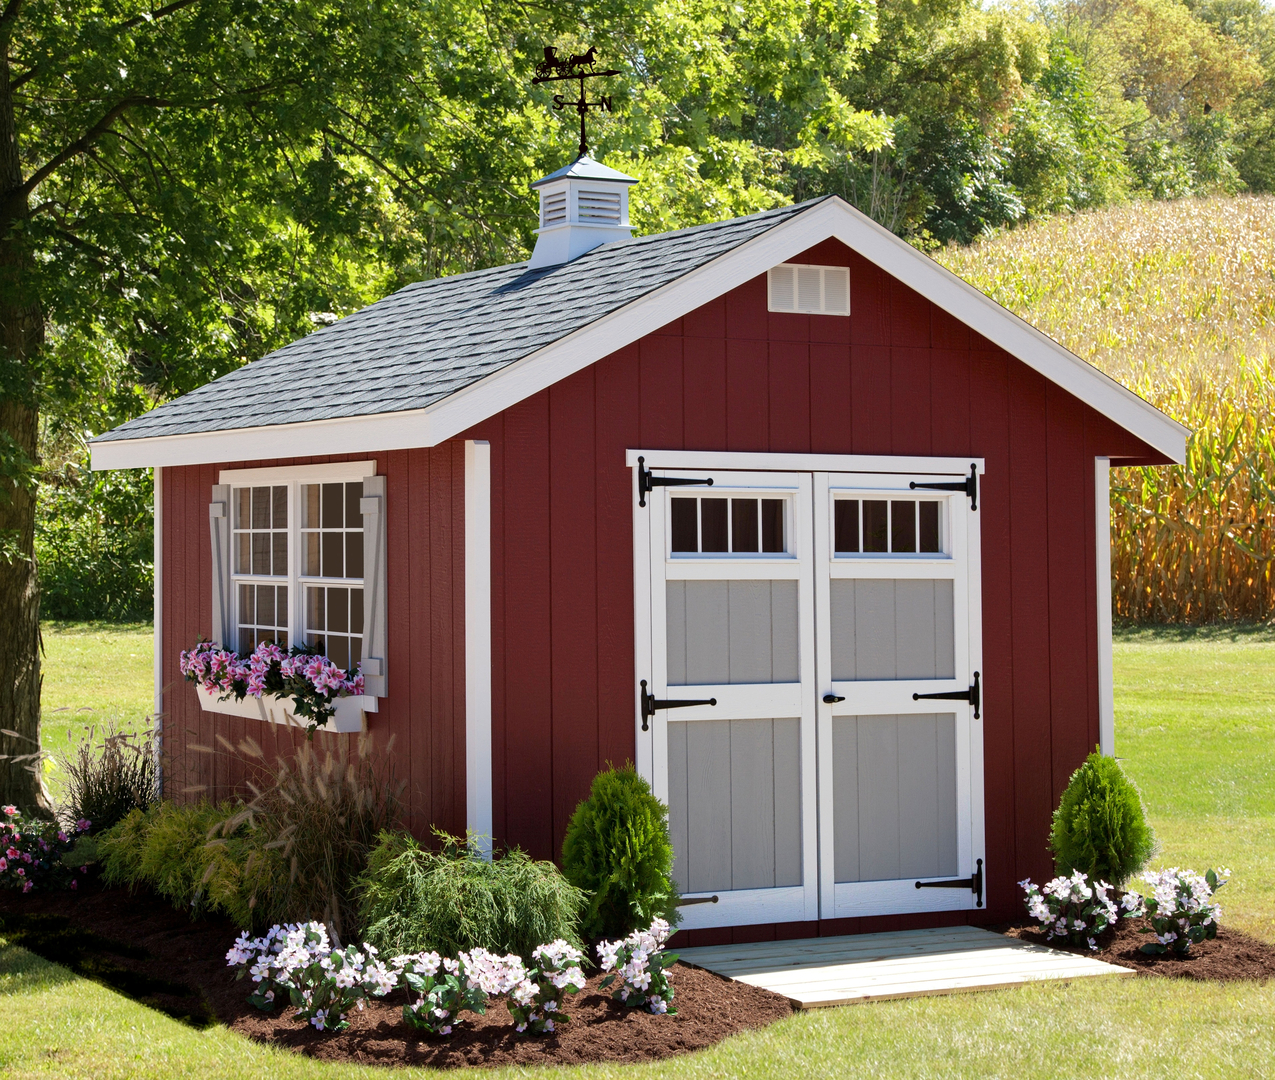 waterloo garden cod barn log cape structures cottage backyard siding photo structure en building sheds outdoor pa property free cabin real shed buildings images home estate